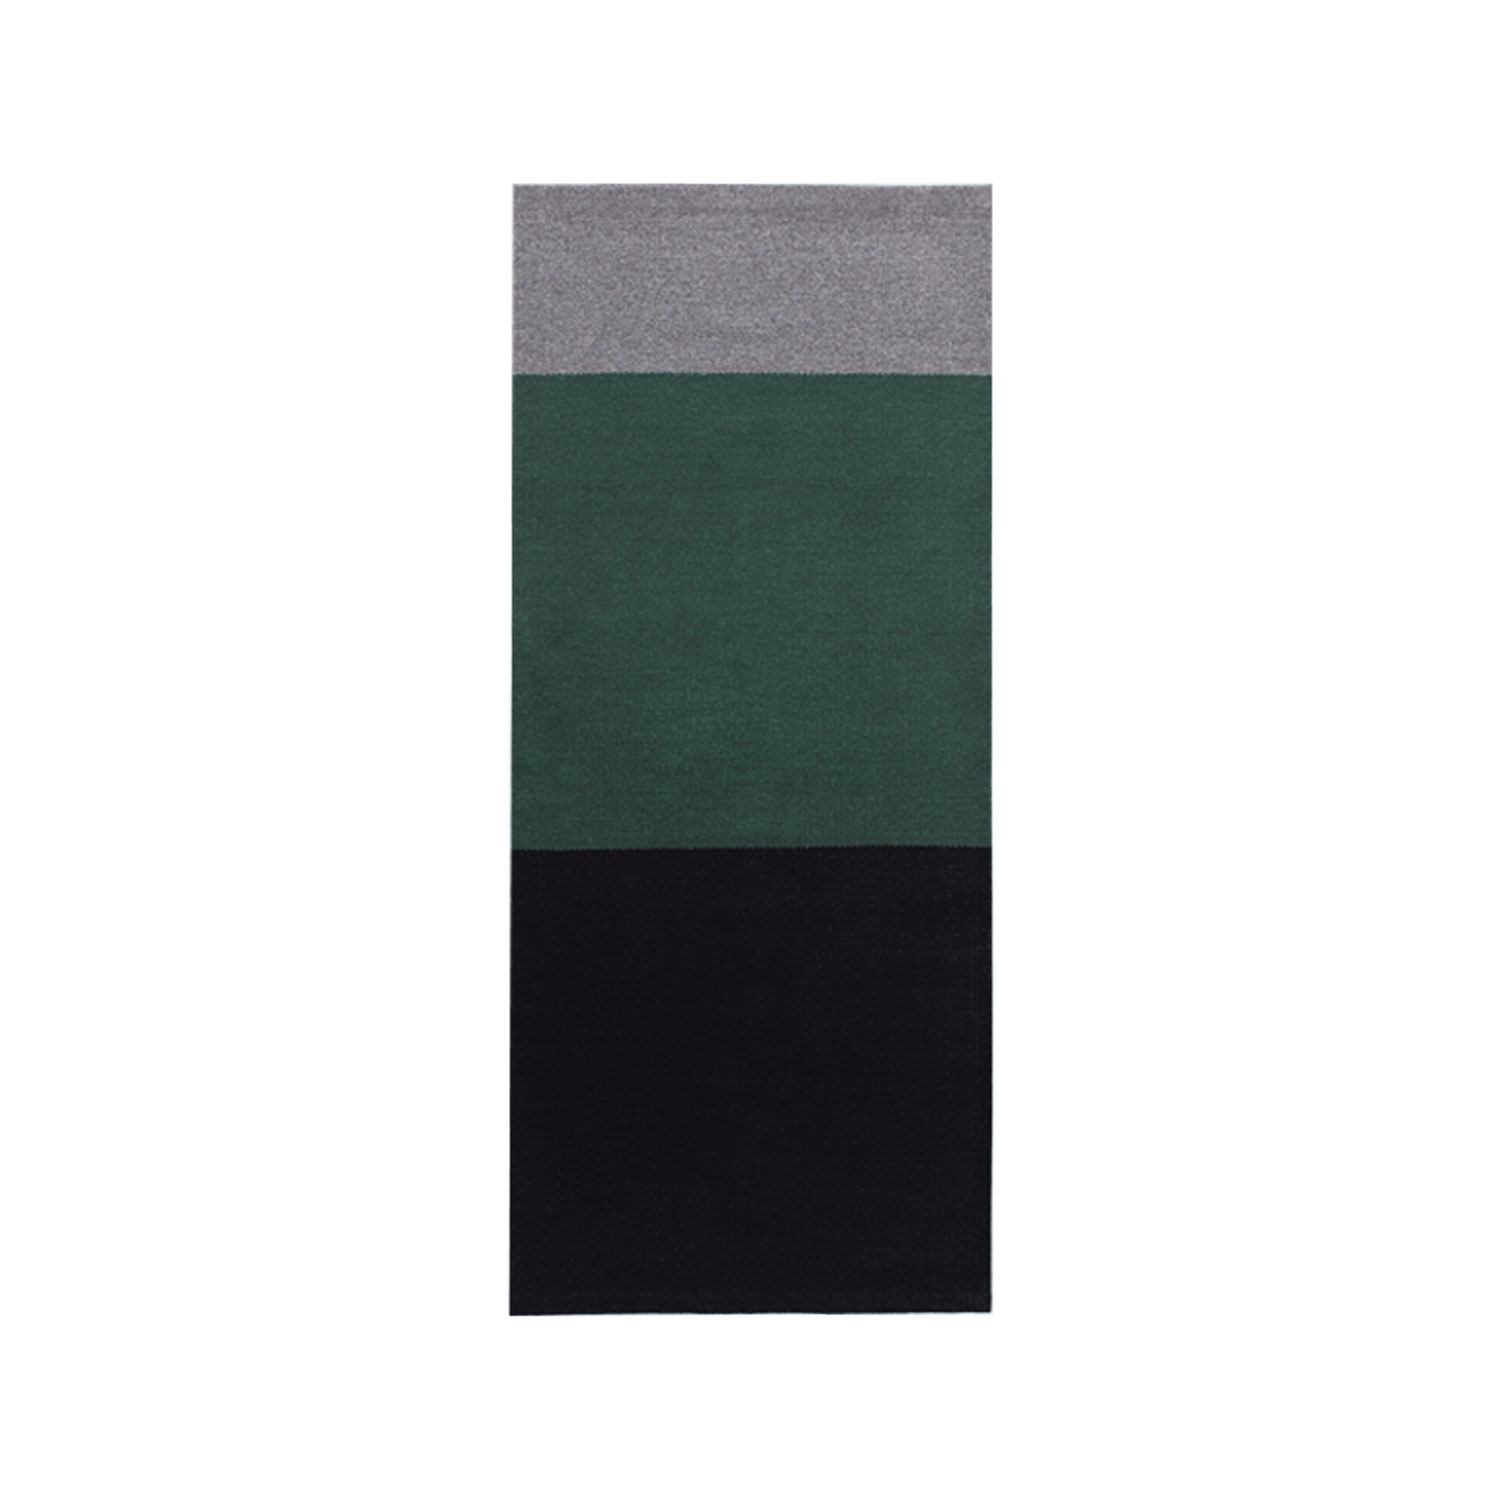 Billie Small Rug - The Alfred collection consists of five series (Fran, Frenzy, Lucy, Ivy, Billie) of handwoven minimalist carpets made by Belgian textile designers Marie Mees and Athérine Biasino. All carpets are hand-woven with a mixture of two top-shelf wools from New Zealand and Portugal, the first offering the right softness and look, the other adding strength.  By offering highly durable and supremely sober carpets, the Alfred Collection honours the archetype of the carpet, pure in form and in function, making it the perfect textile for the minimalist interior of the design admirer. Composition of the carpet is a mixture of Merino, New Zealand and Beira Alta (Portuguese wool).  | Matter of Stuff